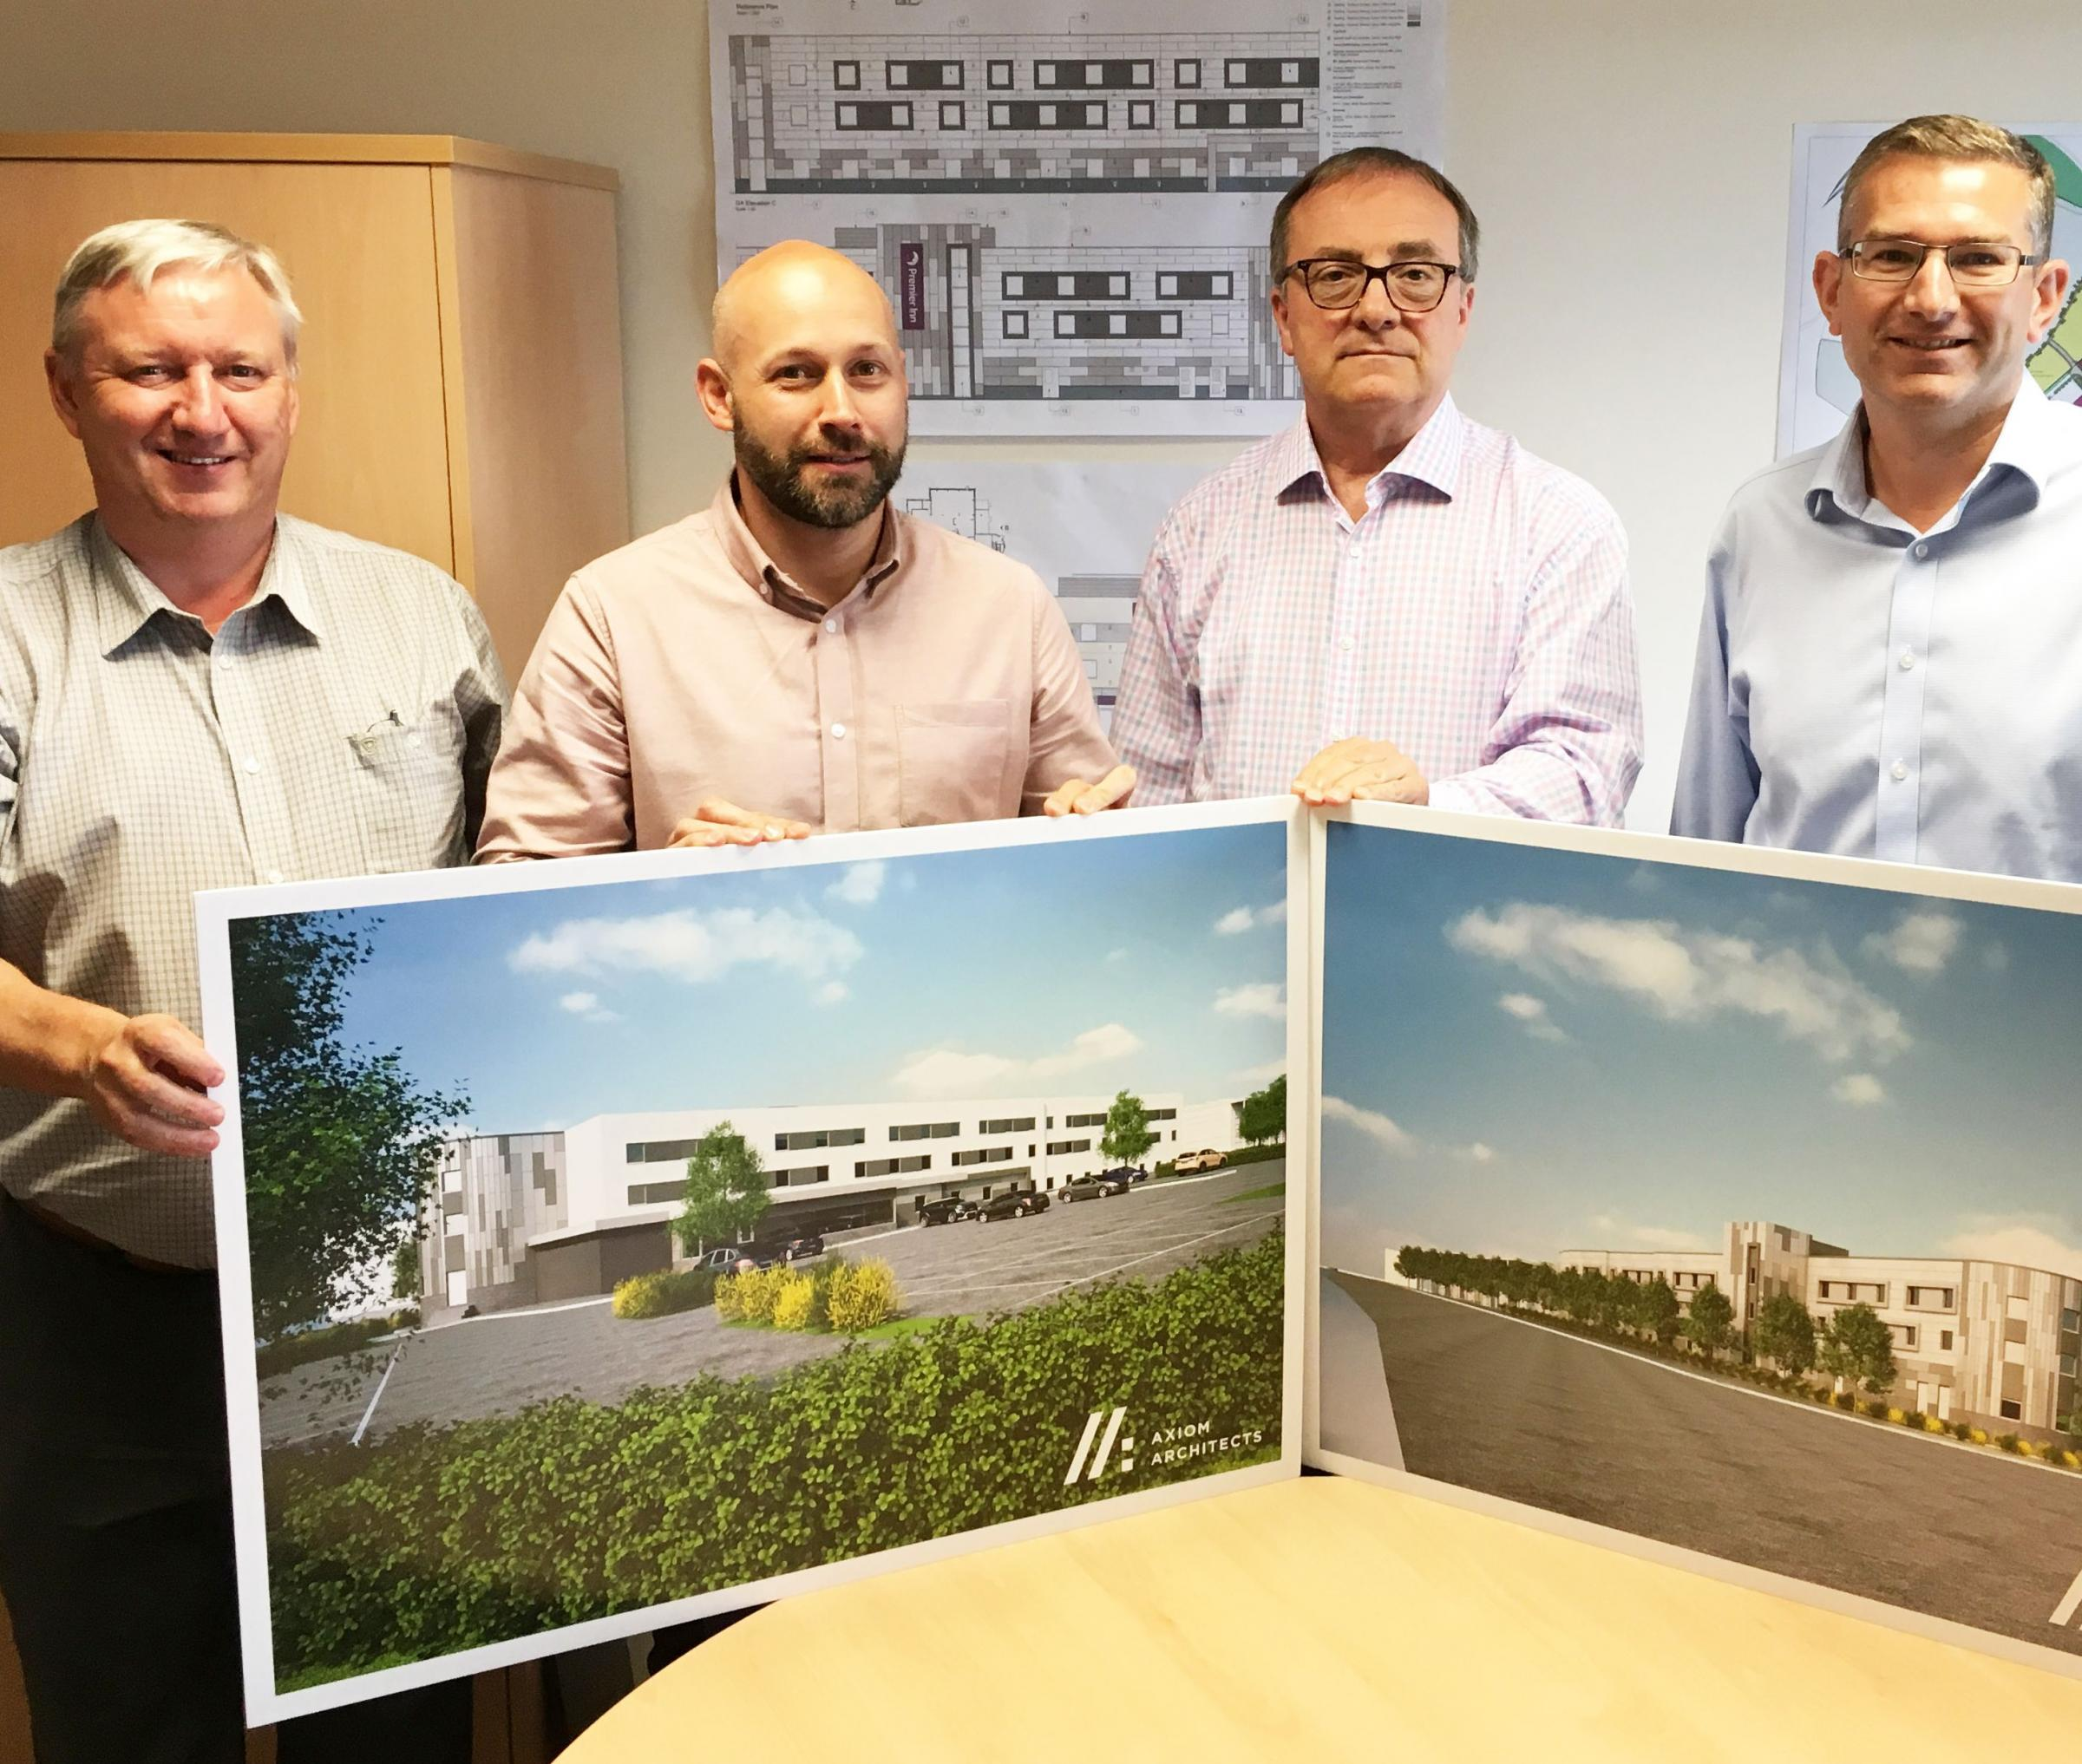 PARTNERSHIP: Left to right - Simon Taylor, contracts manager, Carter Lauren Construction; Tim Luke, senior quantity surveyor at Carter Lauren Construction; Geoff Revell, Asset Manager, Bridgwater Gateway; Phil Wade, Development Manager, Bridgwater Gateway